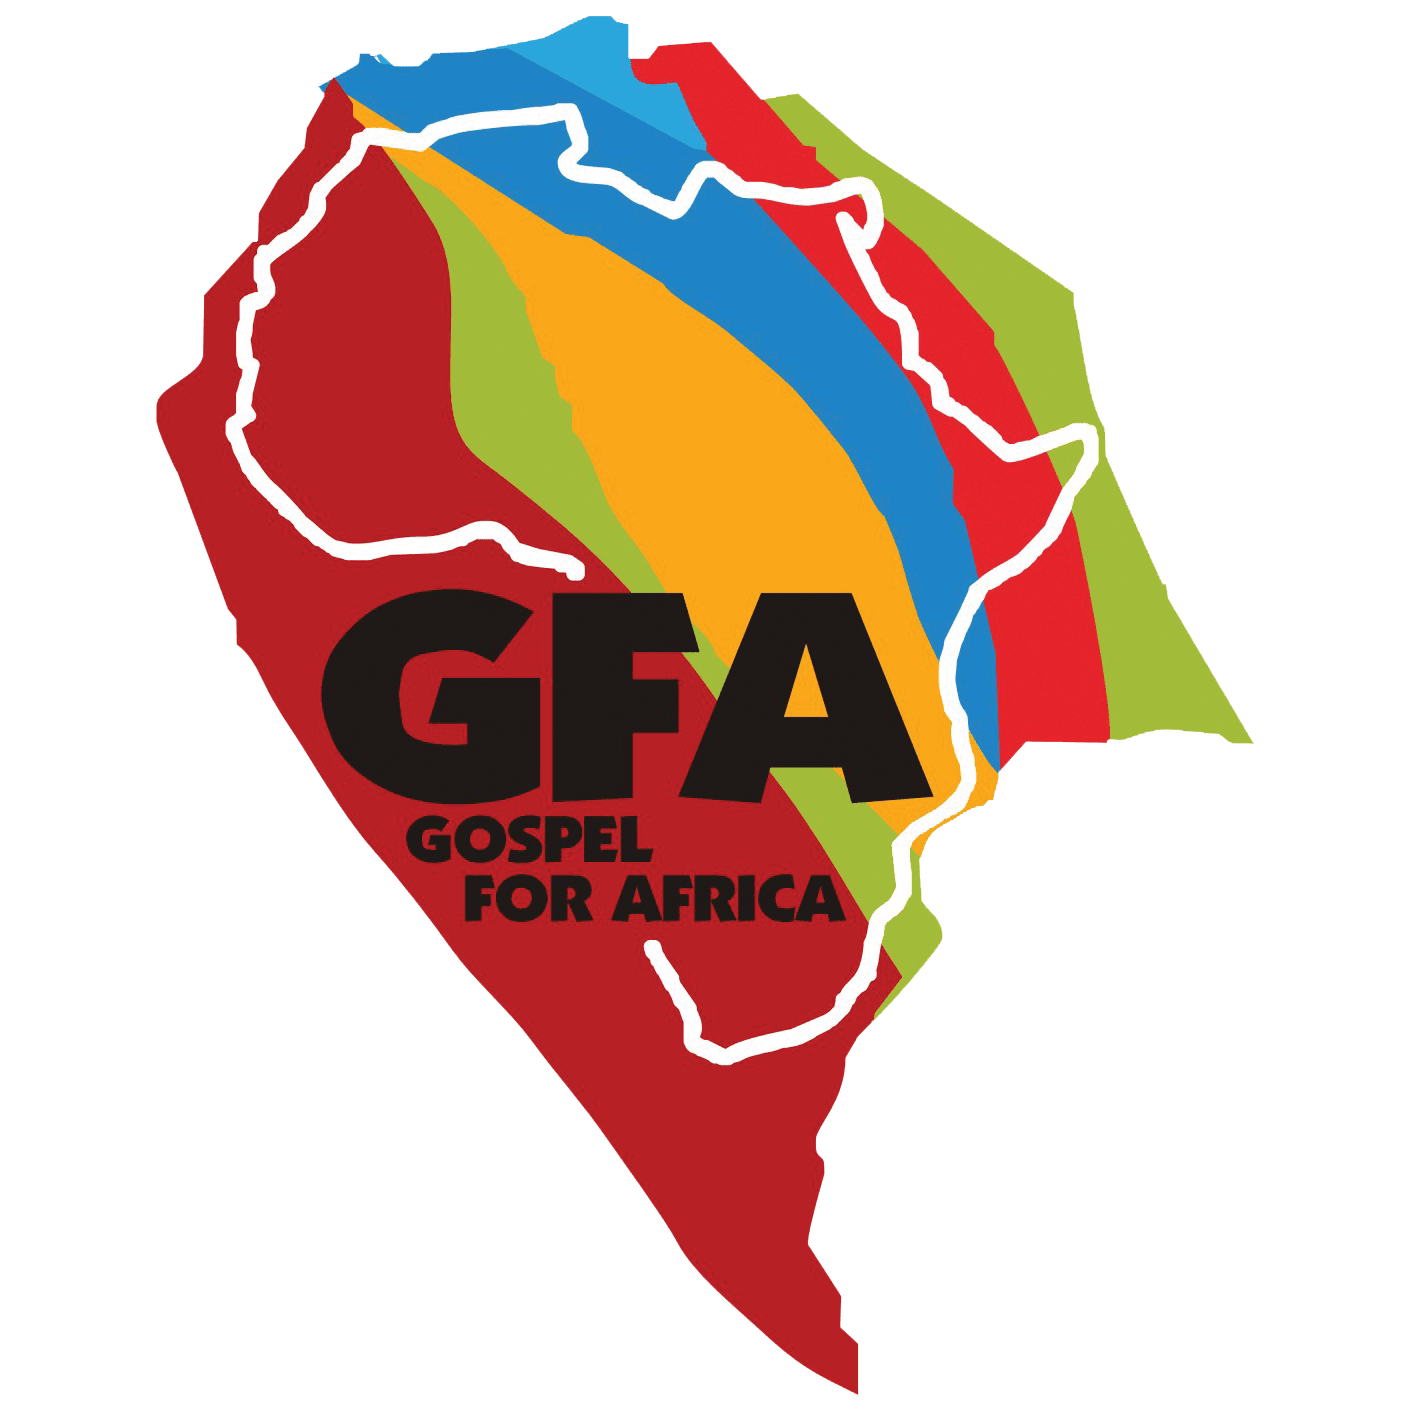 Gospel-for-Africa-logo-hero